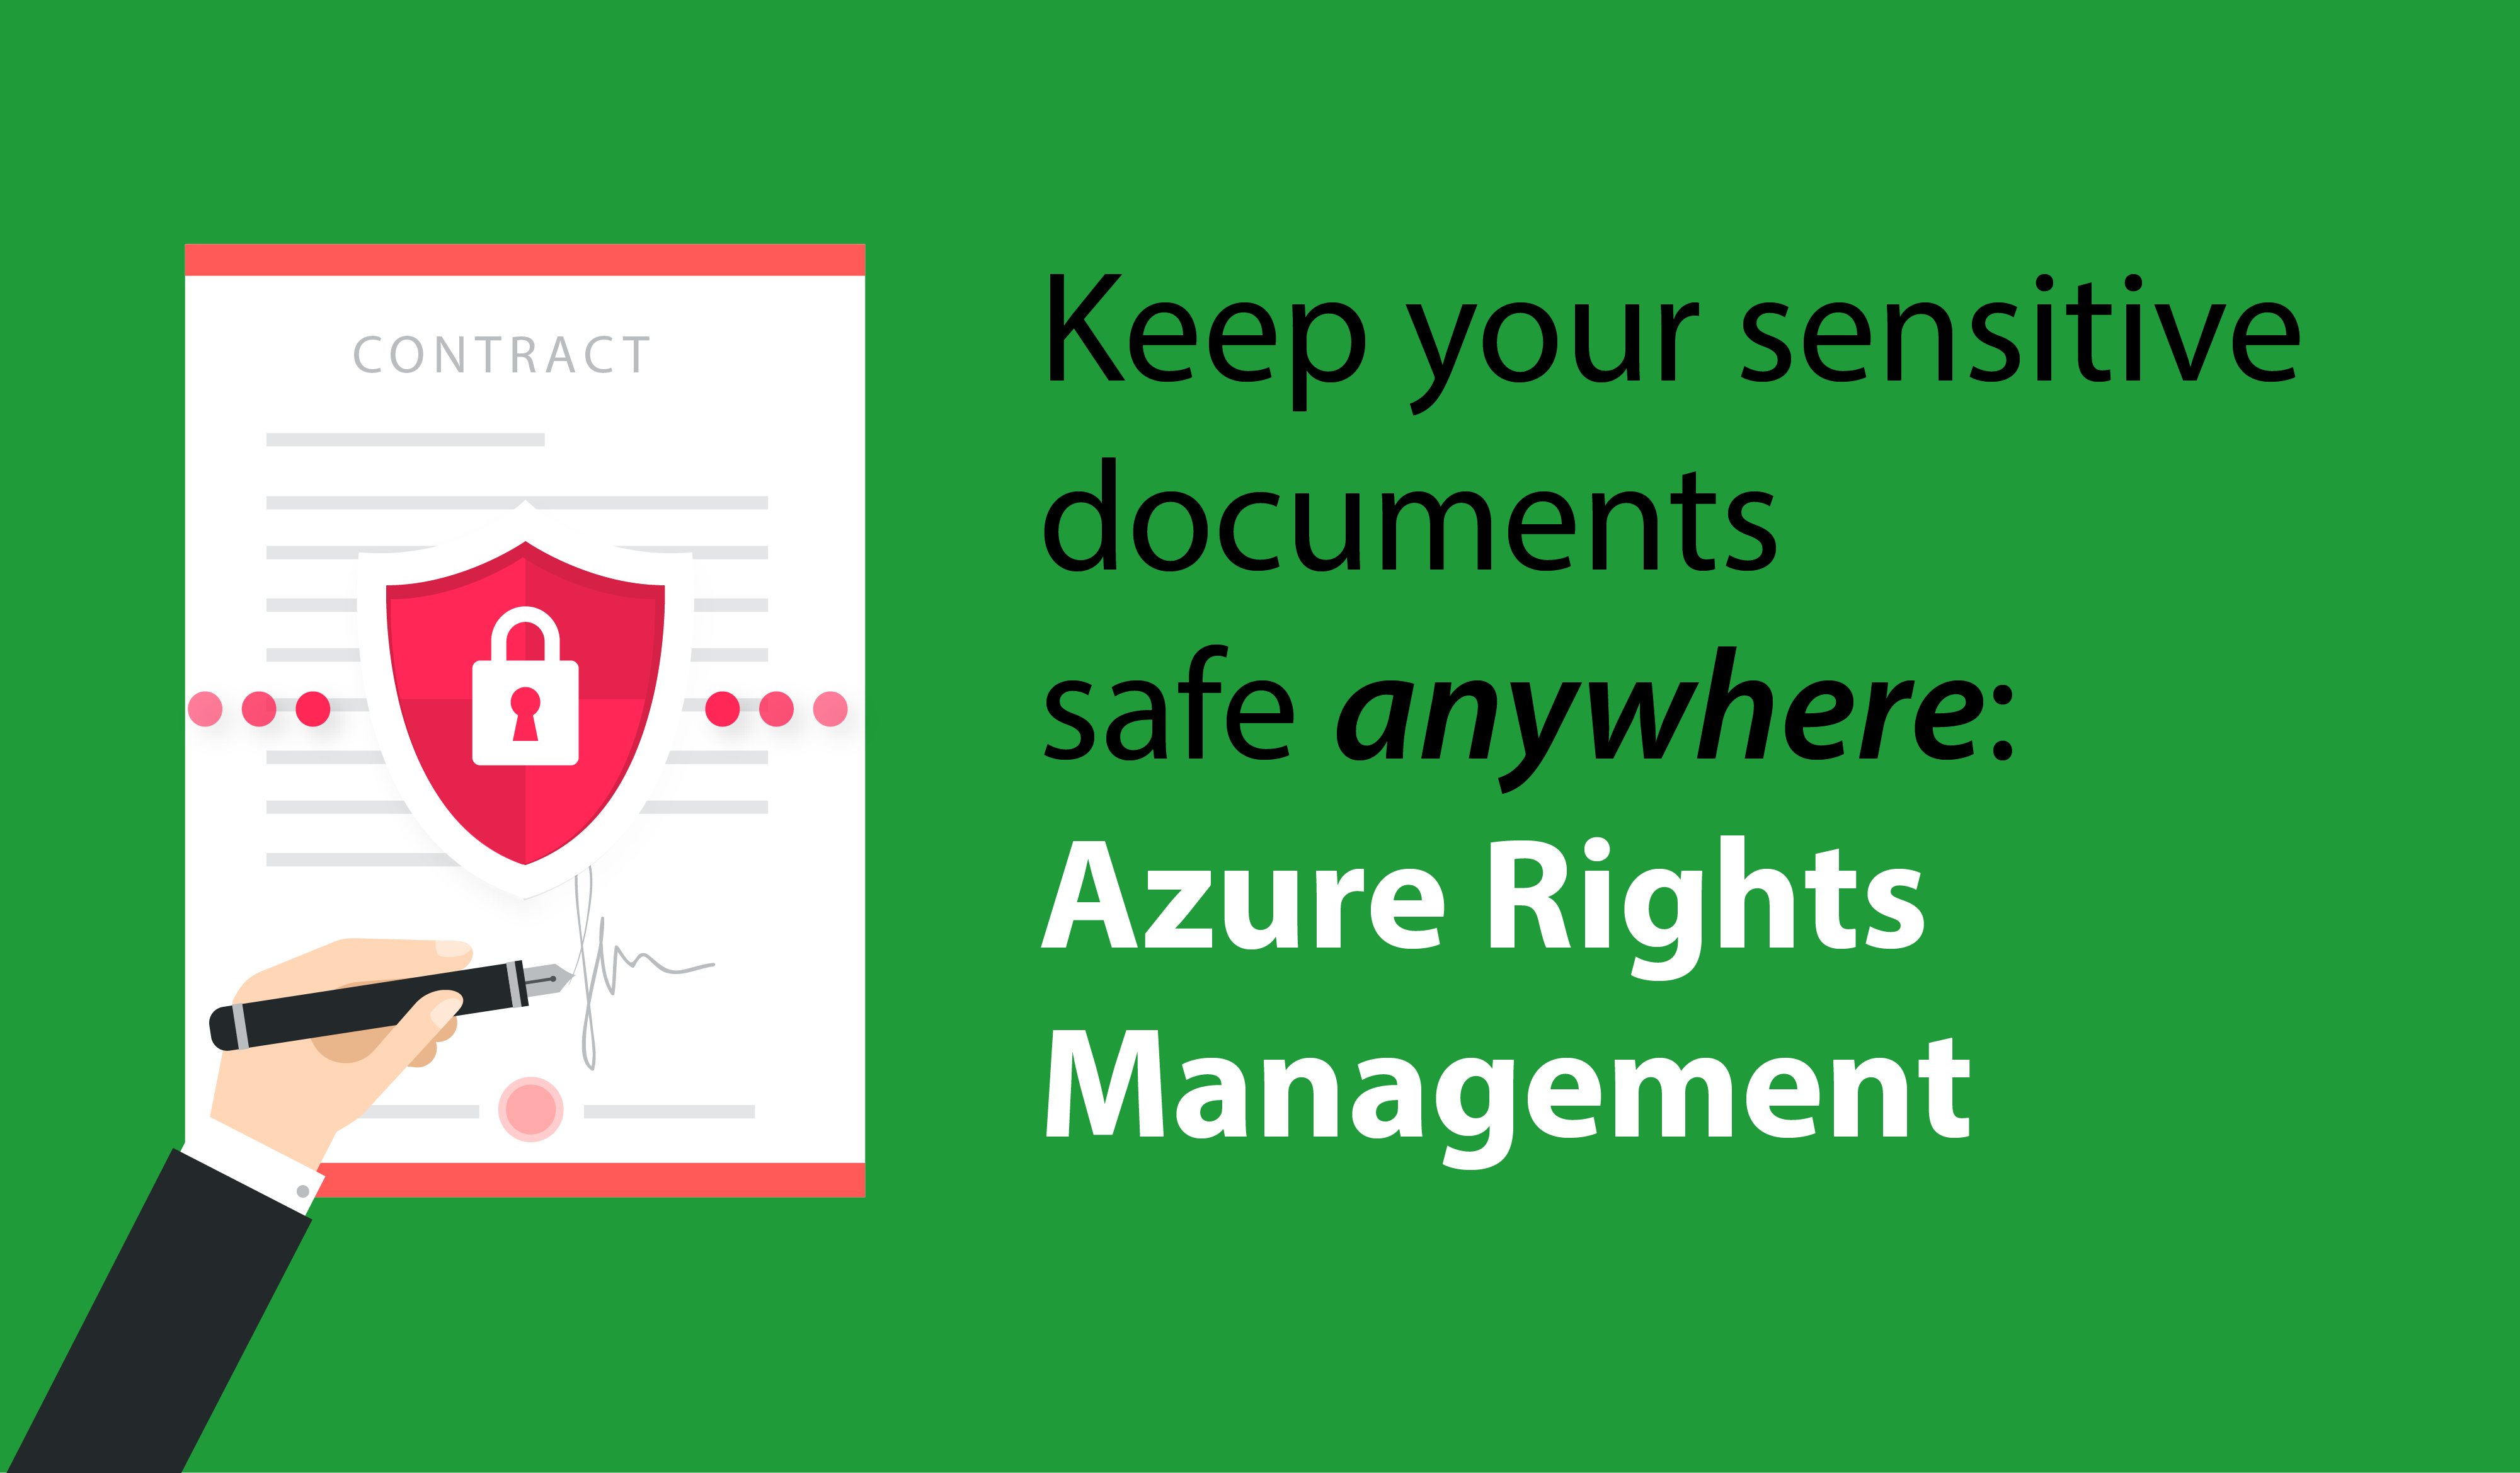 Keep your documents safe anywhere, Azure Rights Management.